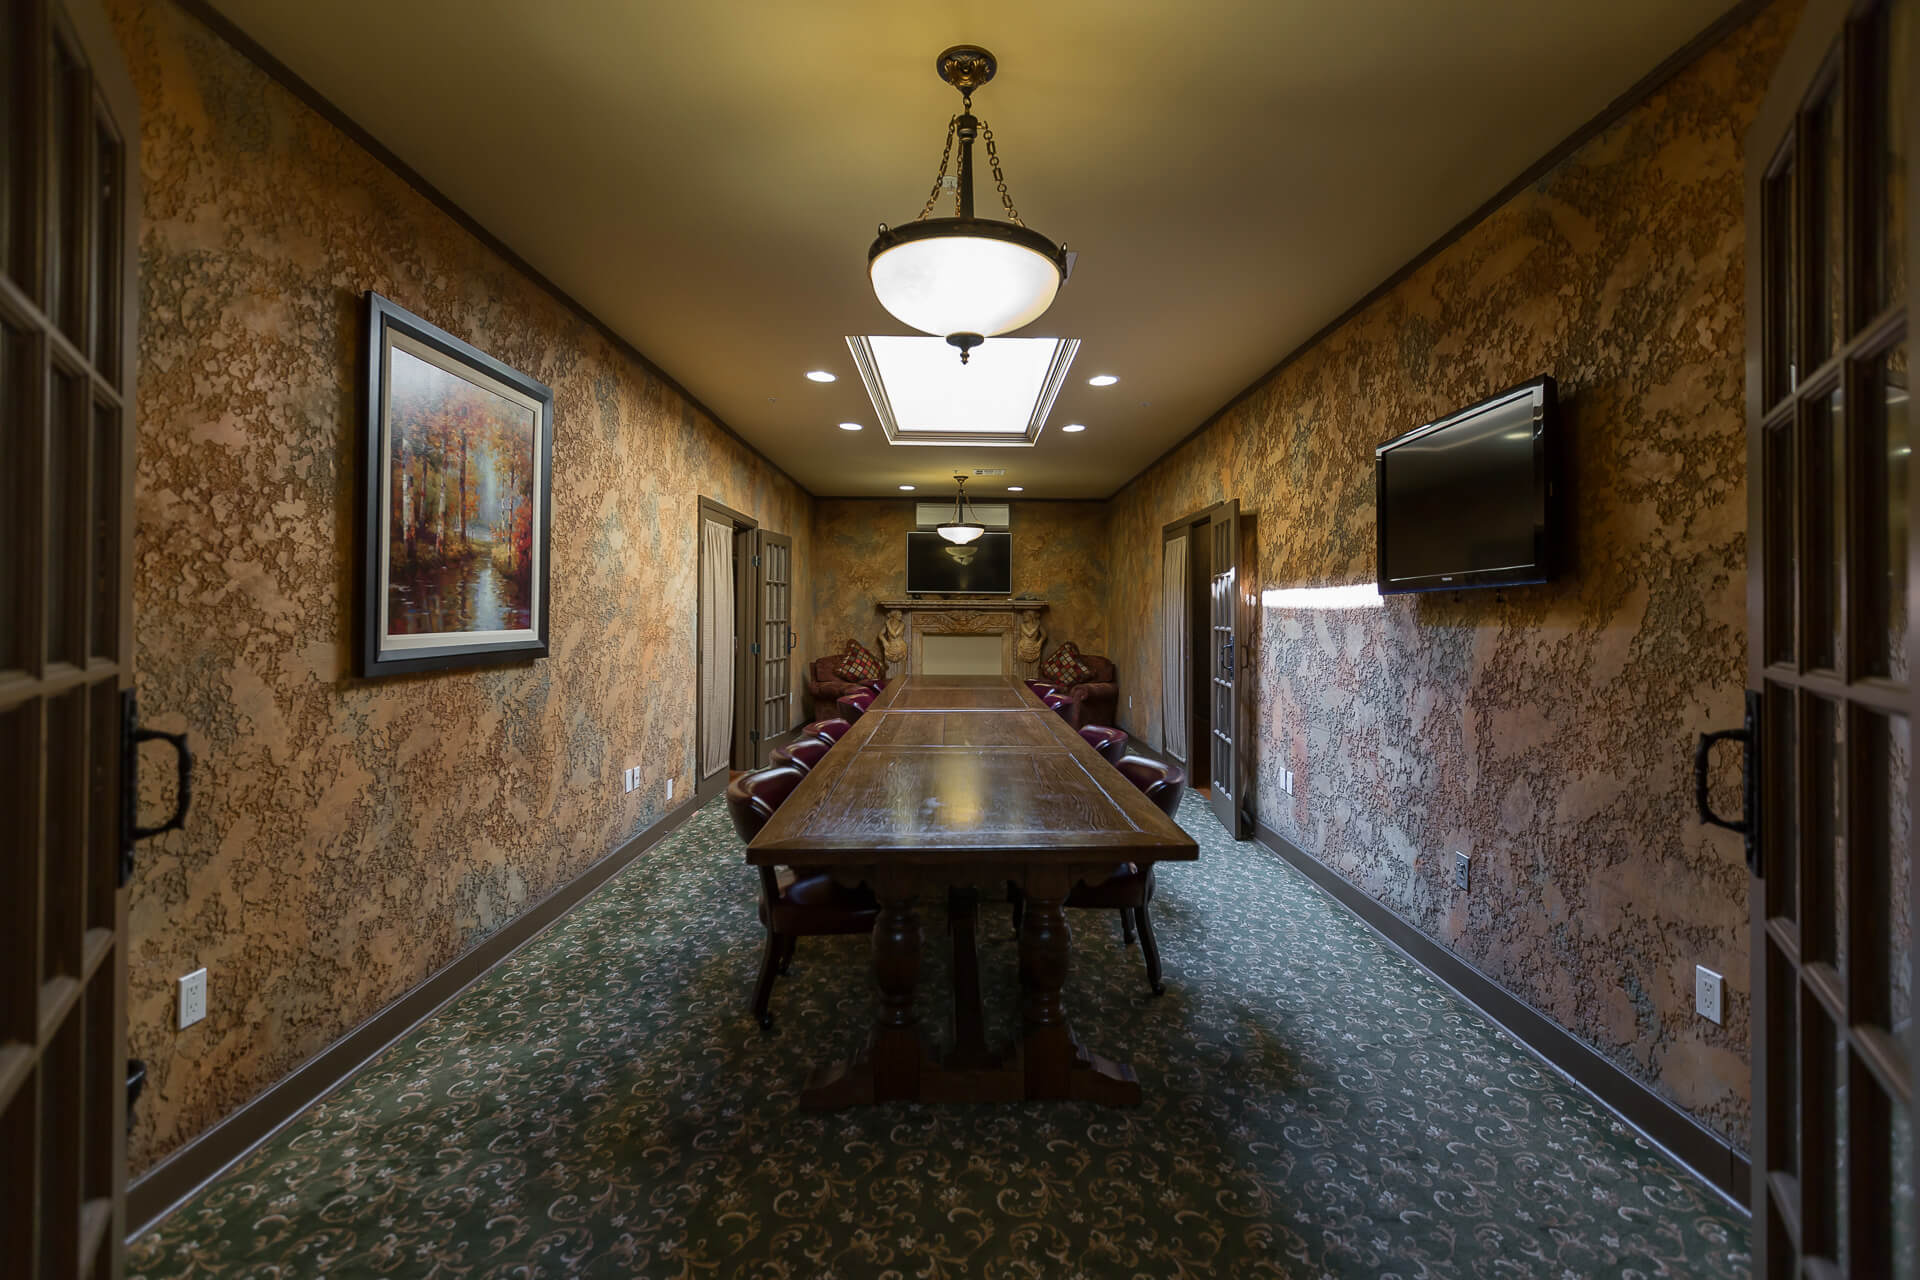 ❖❖❖CAMPBELL BOARDROOM - Meetings conducted in style.